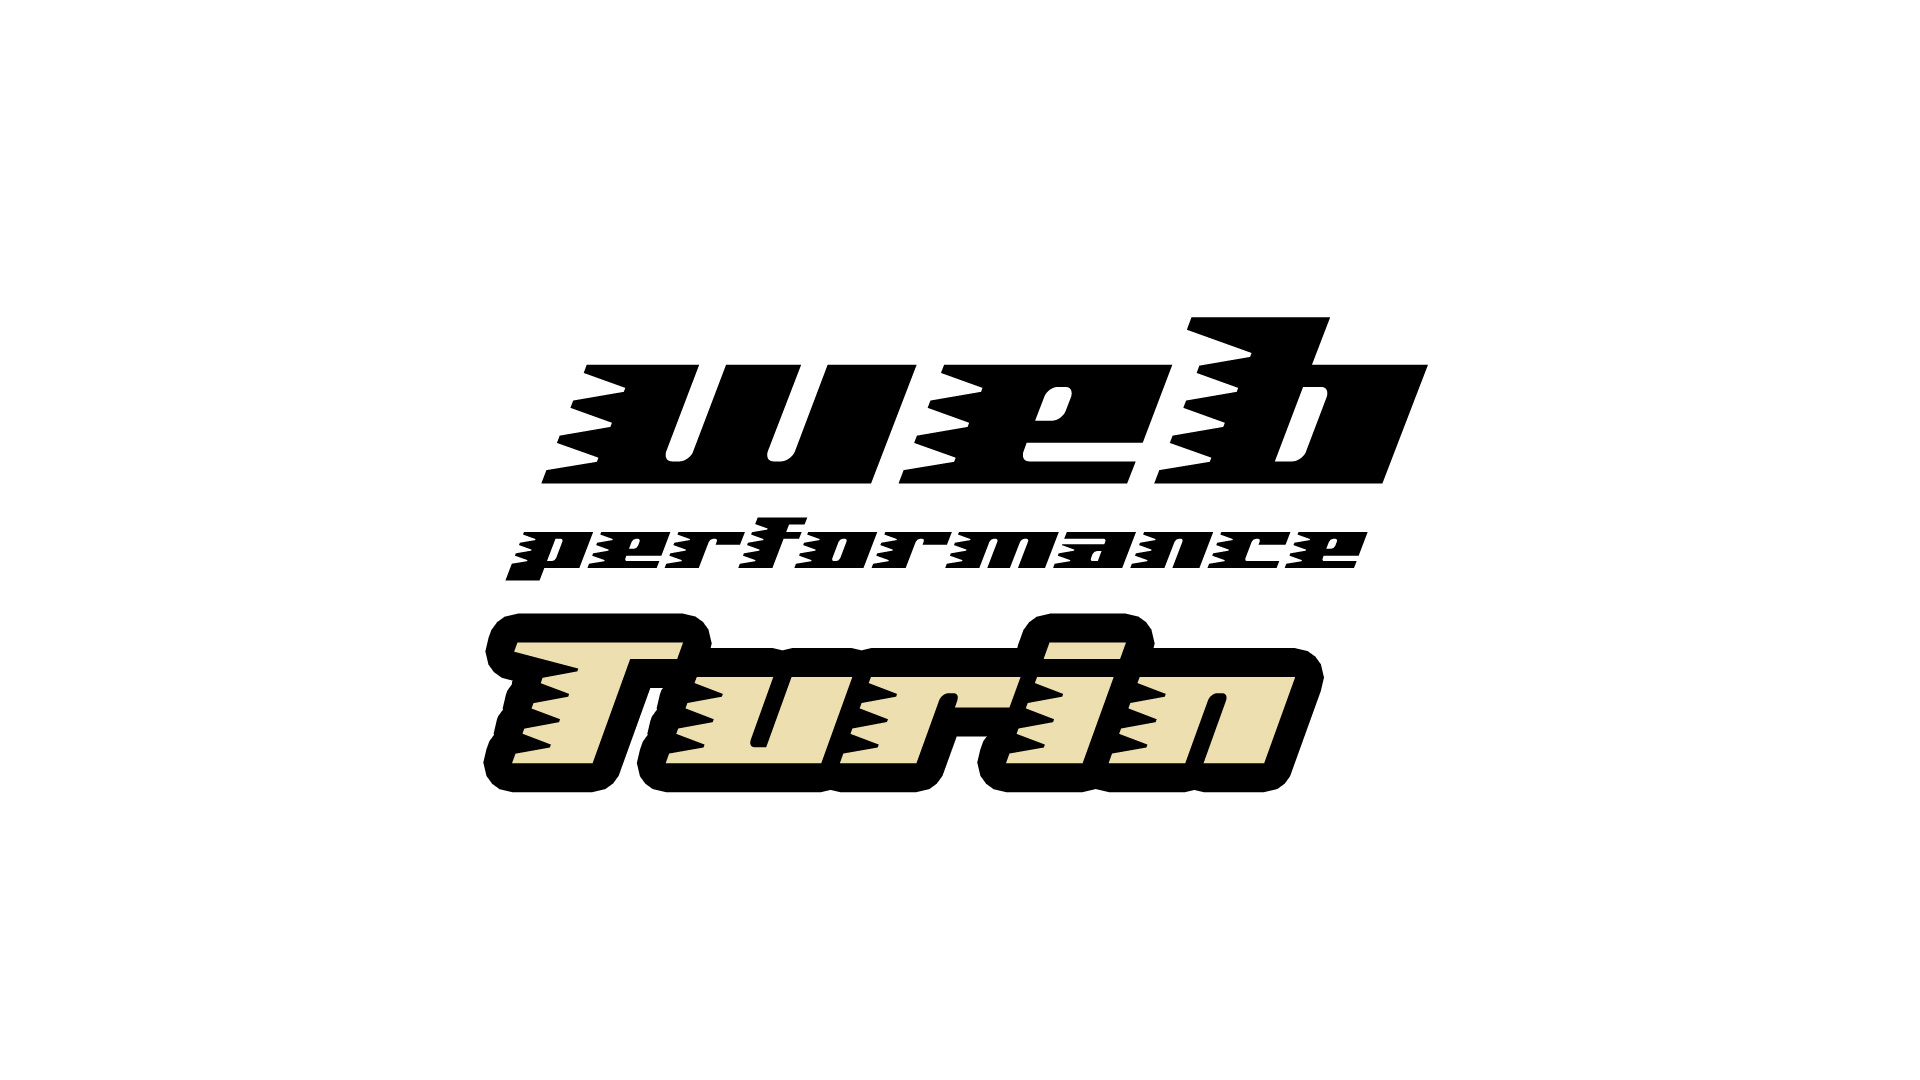 Turin Web Performance Group